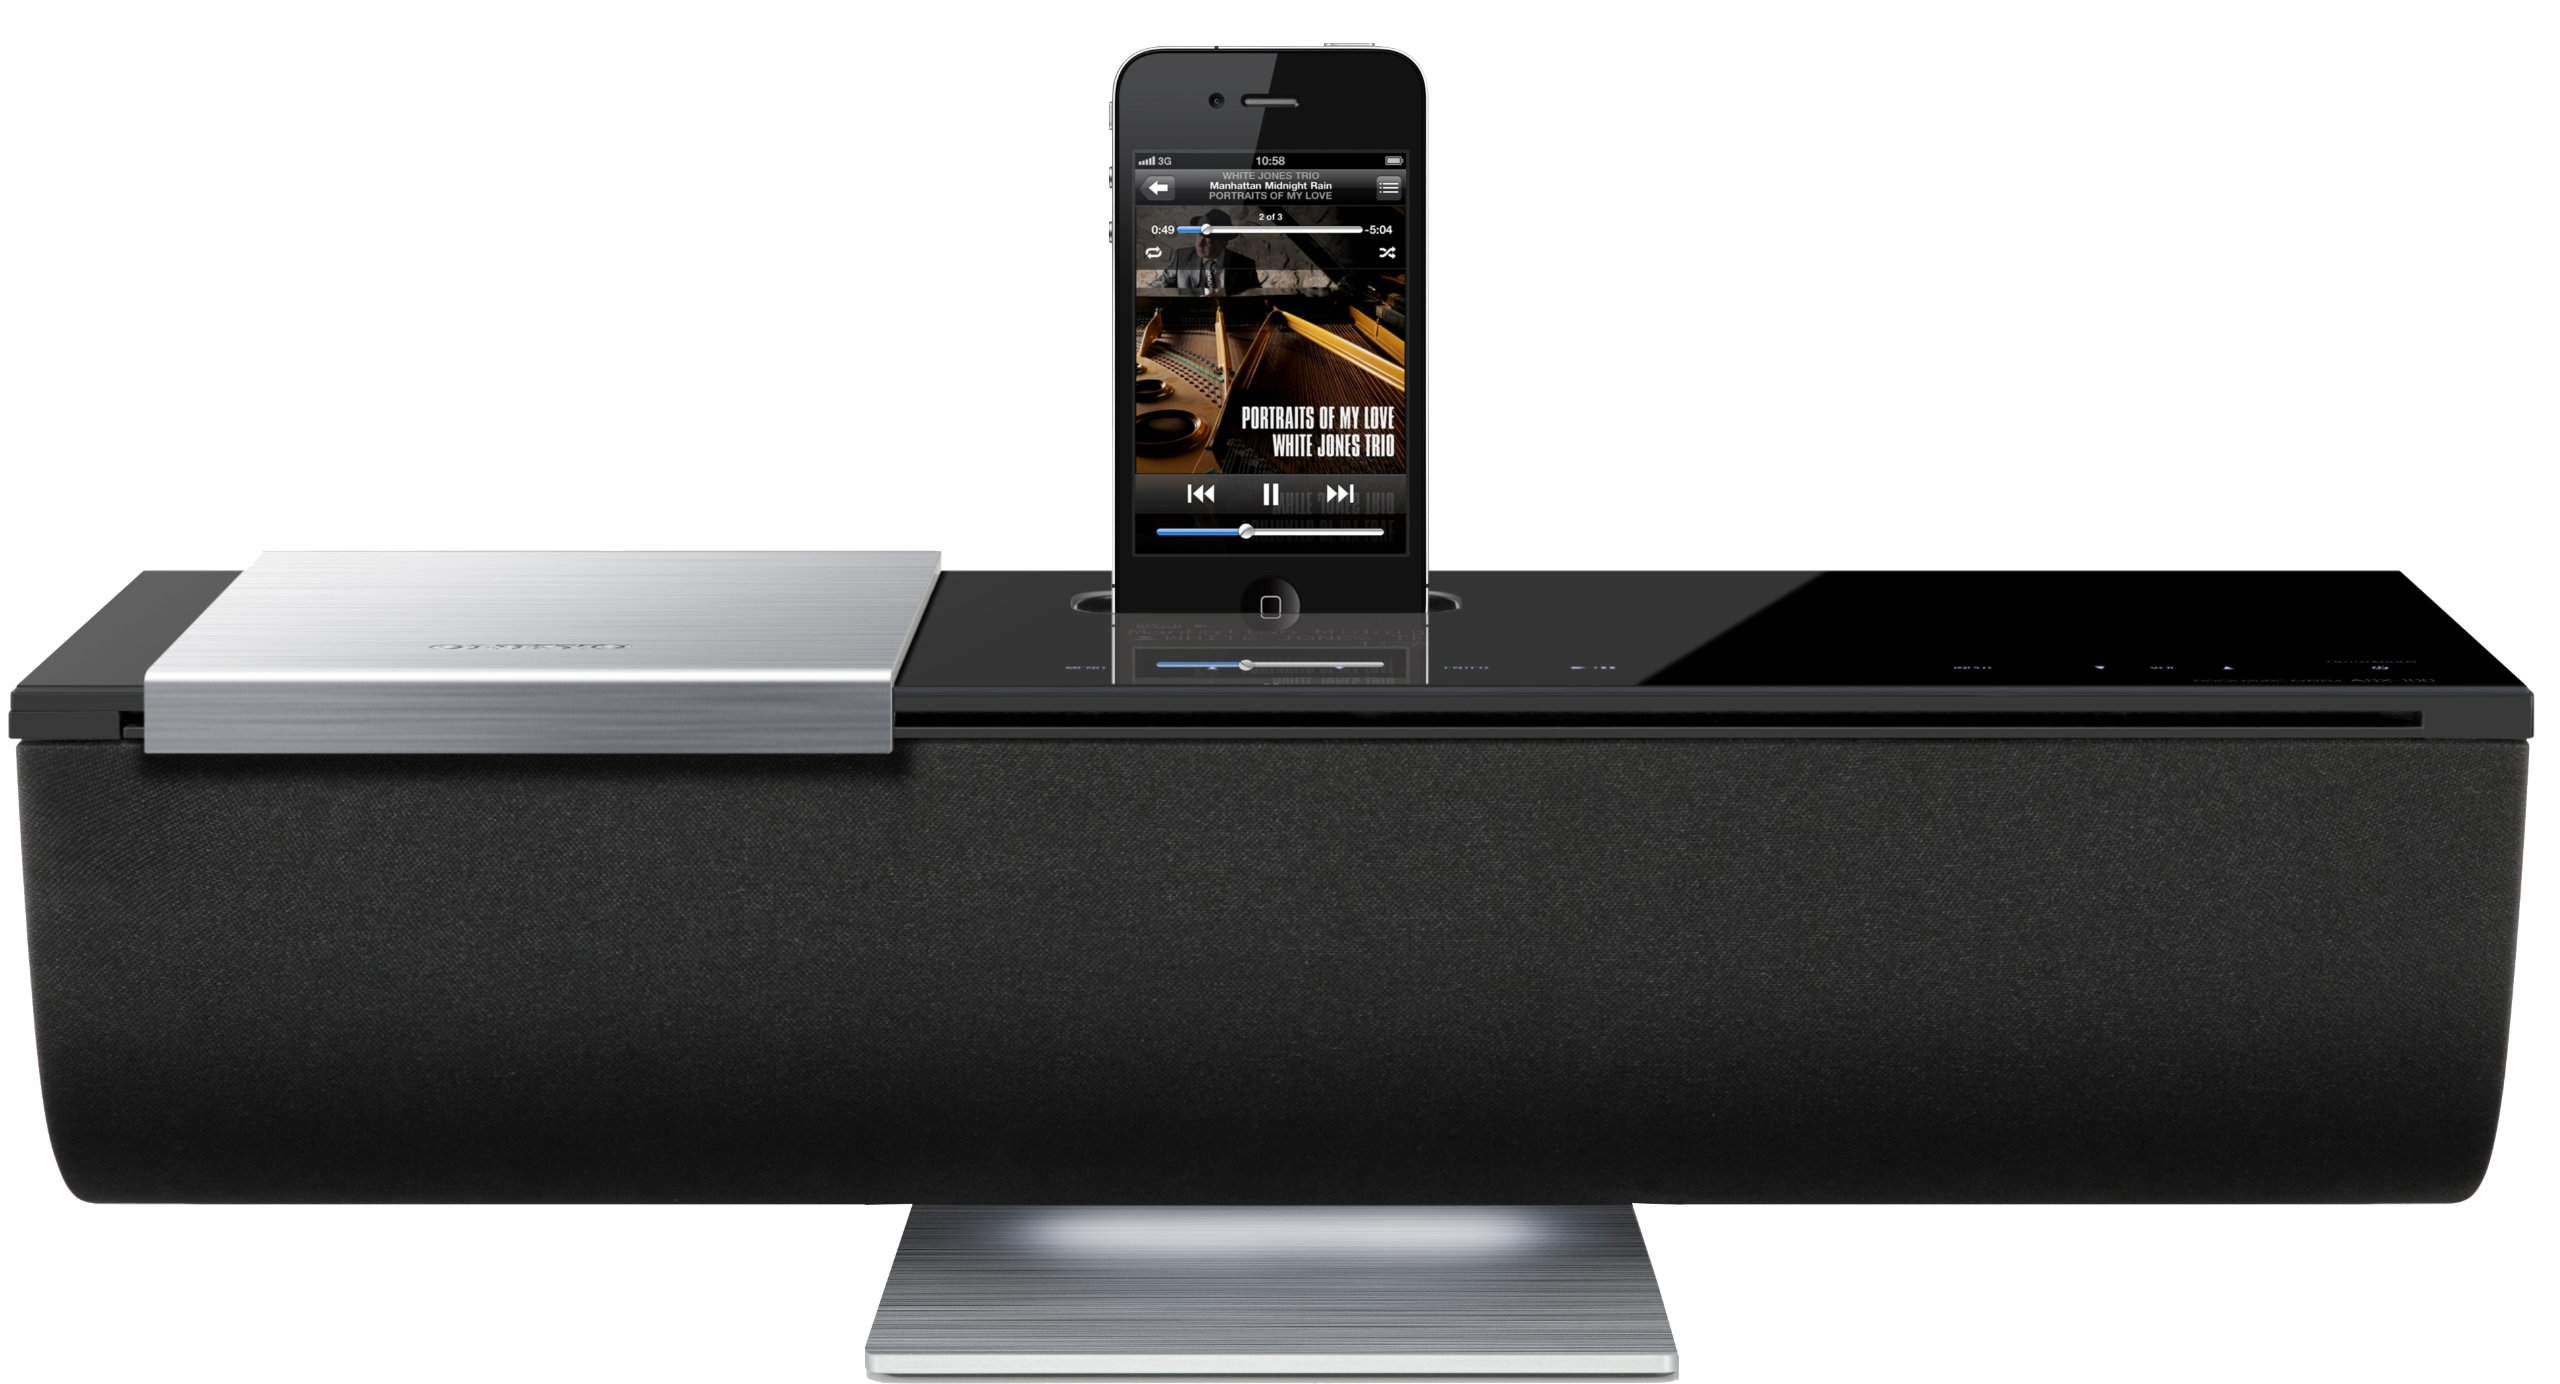 Onkyo ABX-100 iOnly Play iPod/iPhone Music System